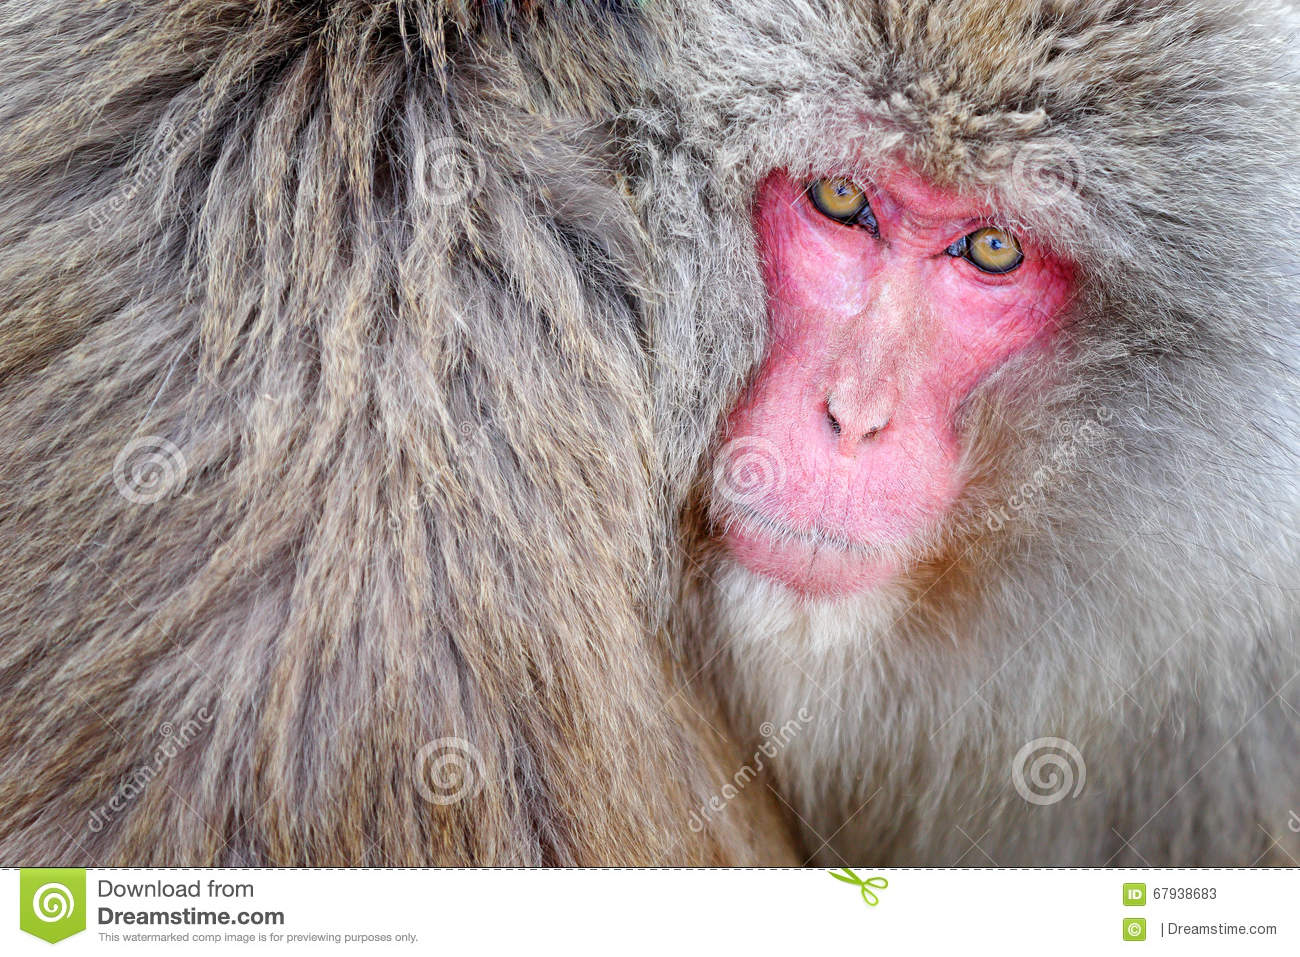 Monkey Japanese Macaque, Macaca Fuscata, Detail Red Face Portrait.